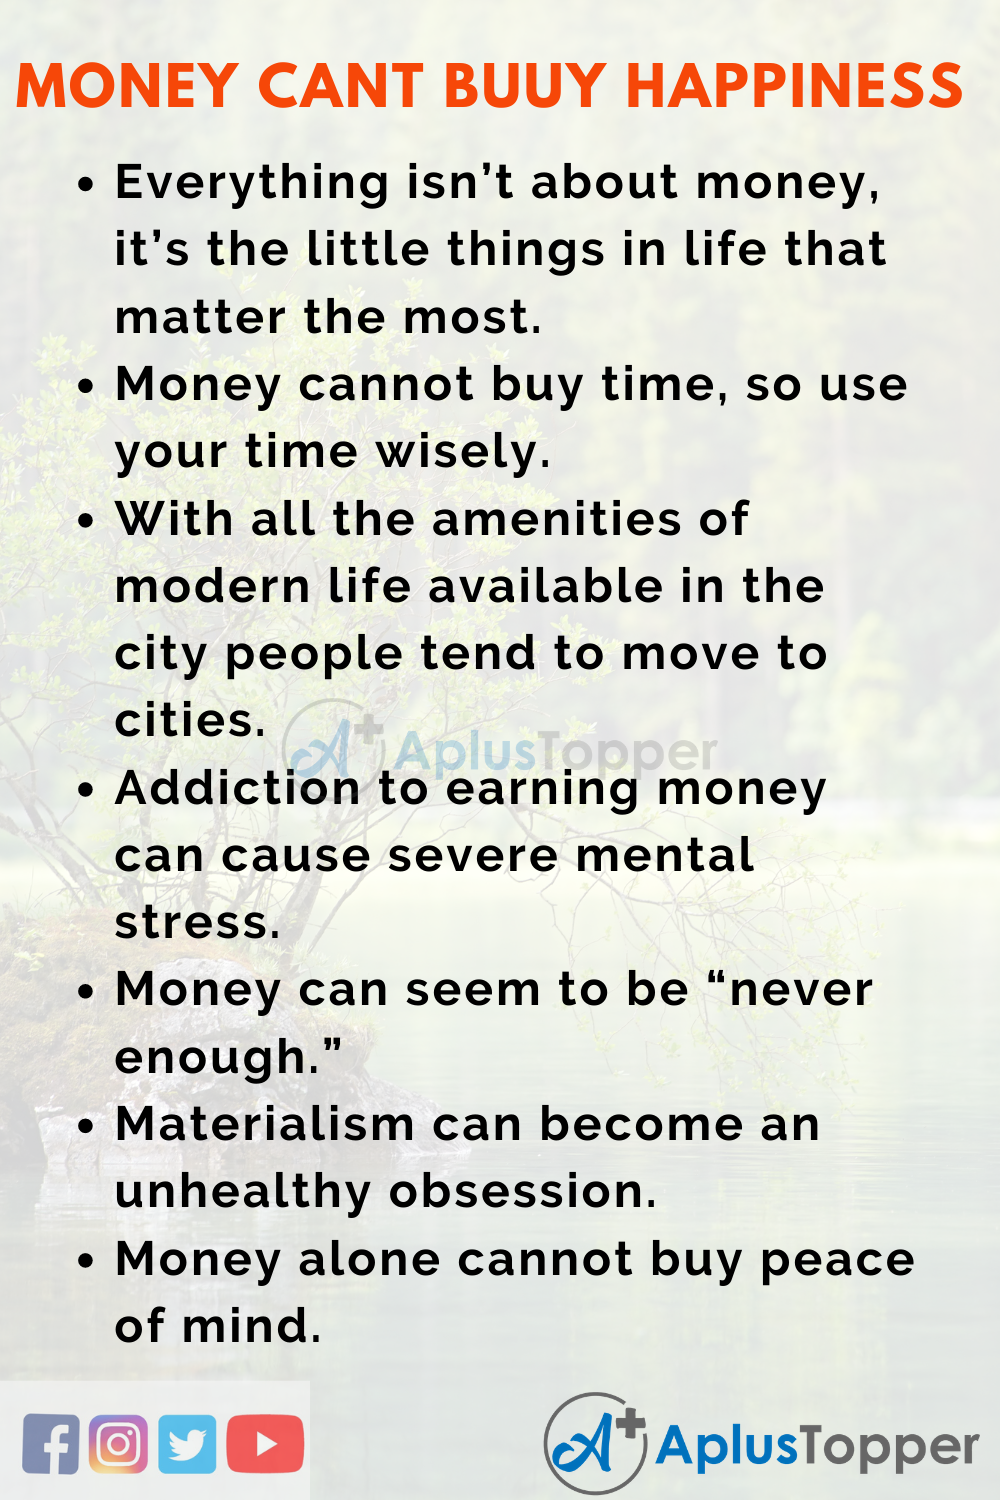 Can Money Buy Happiness Essay